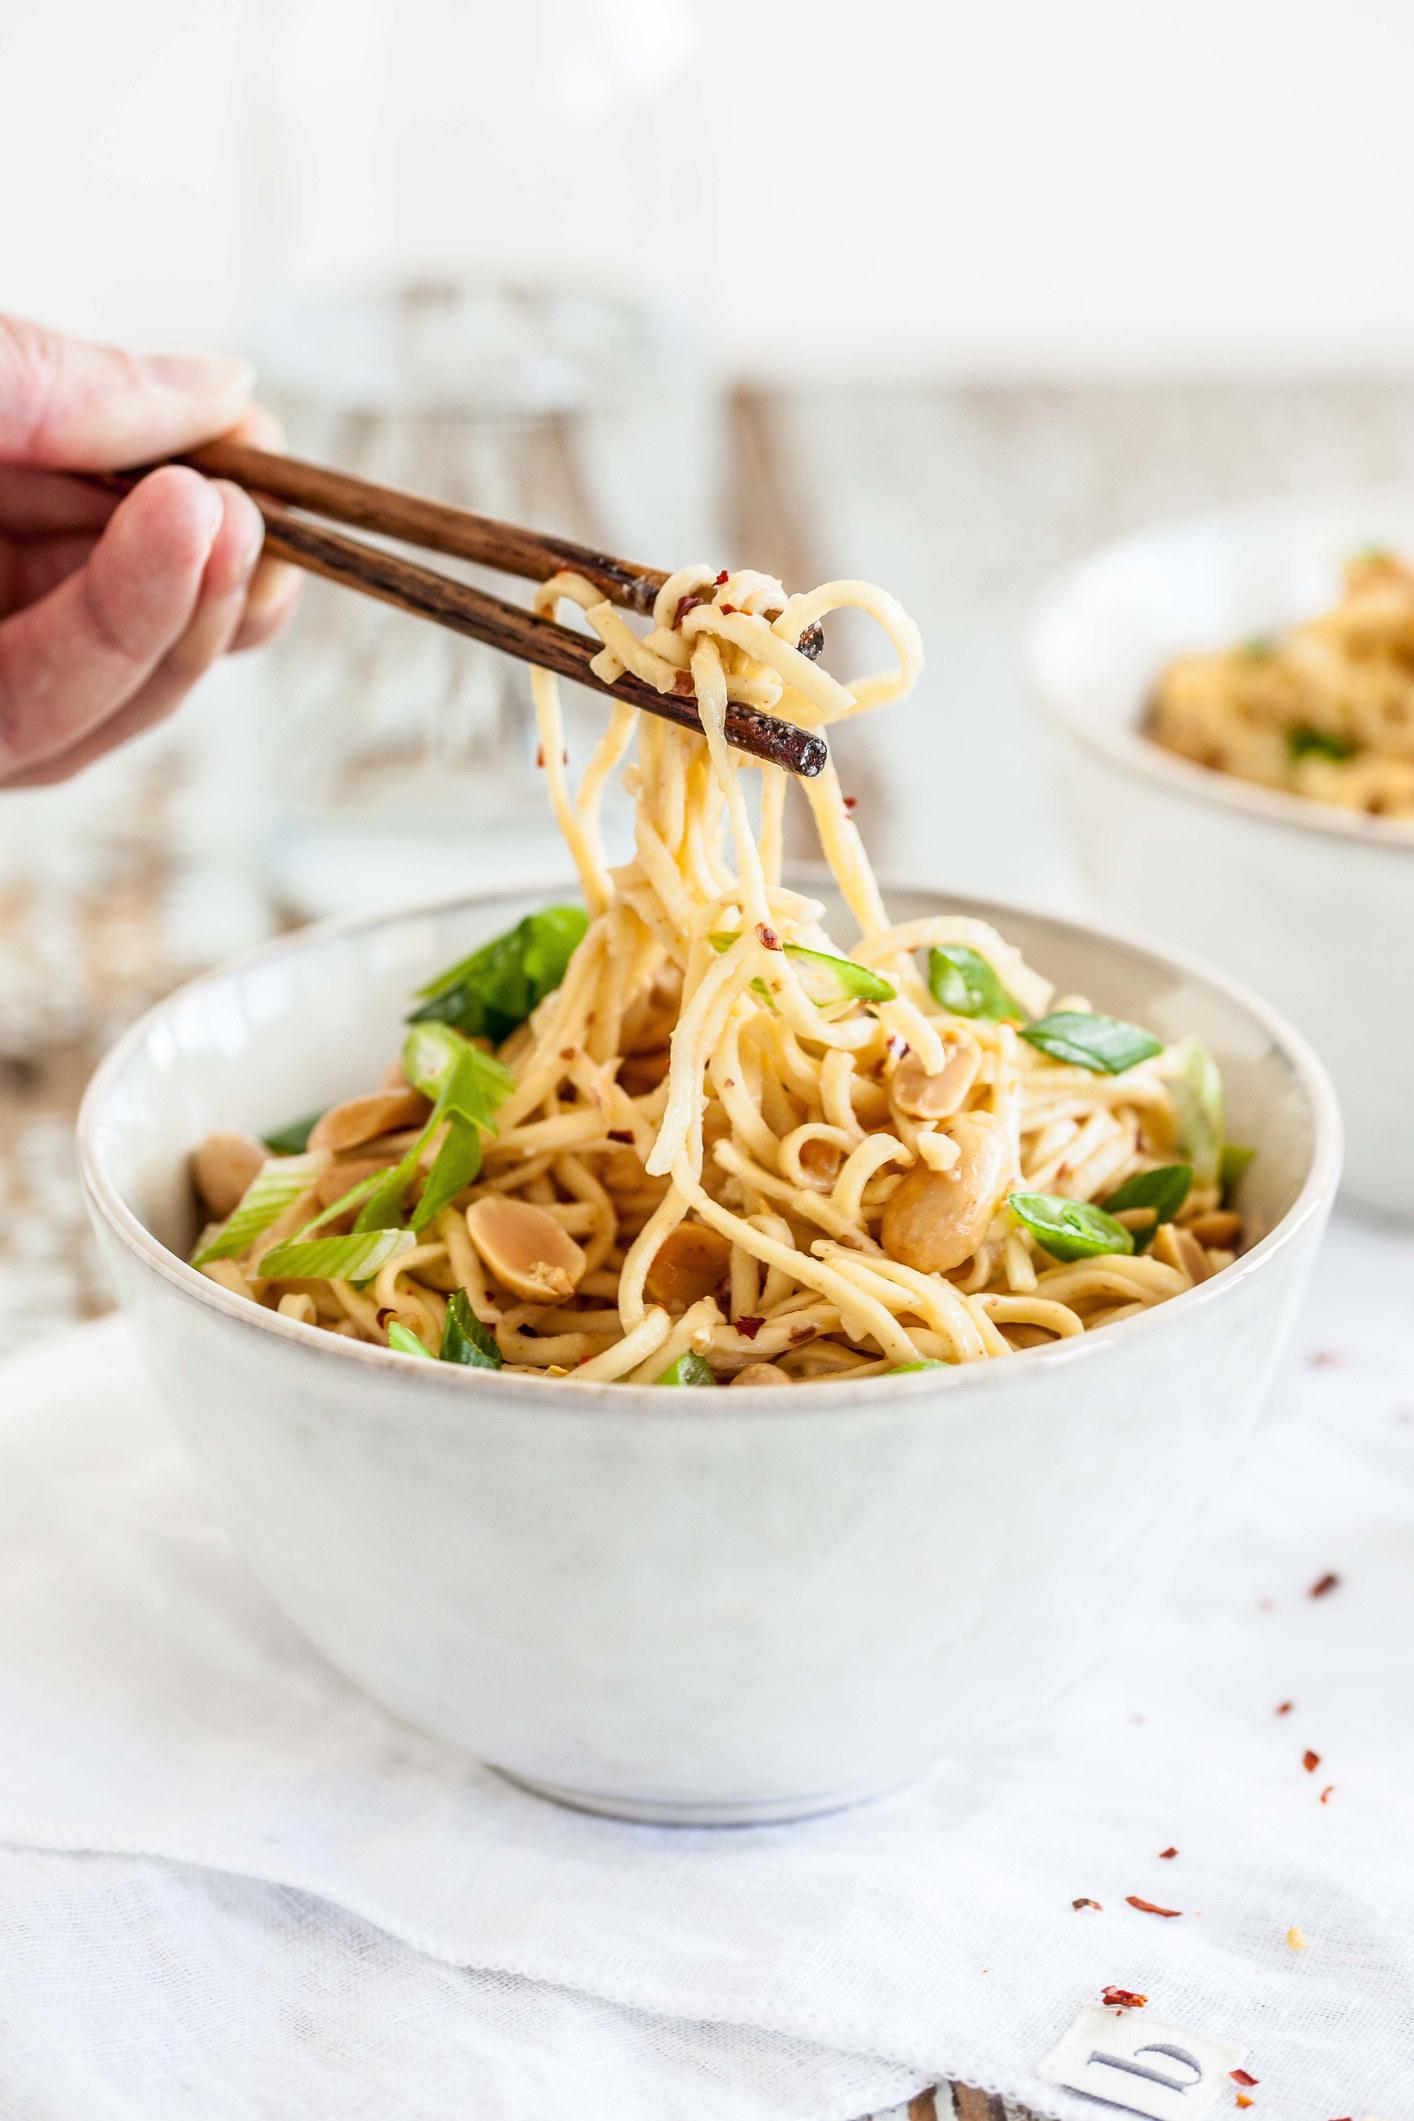 Someone eating peanut noodles with chopsticks.